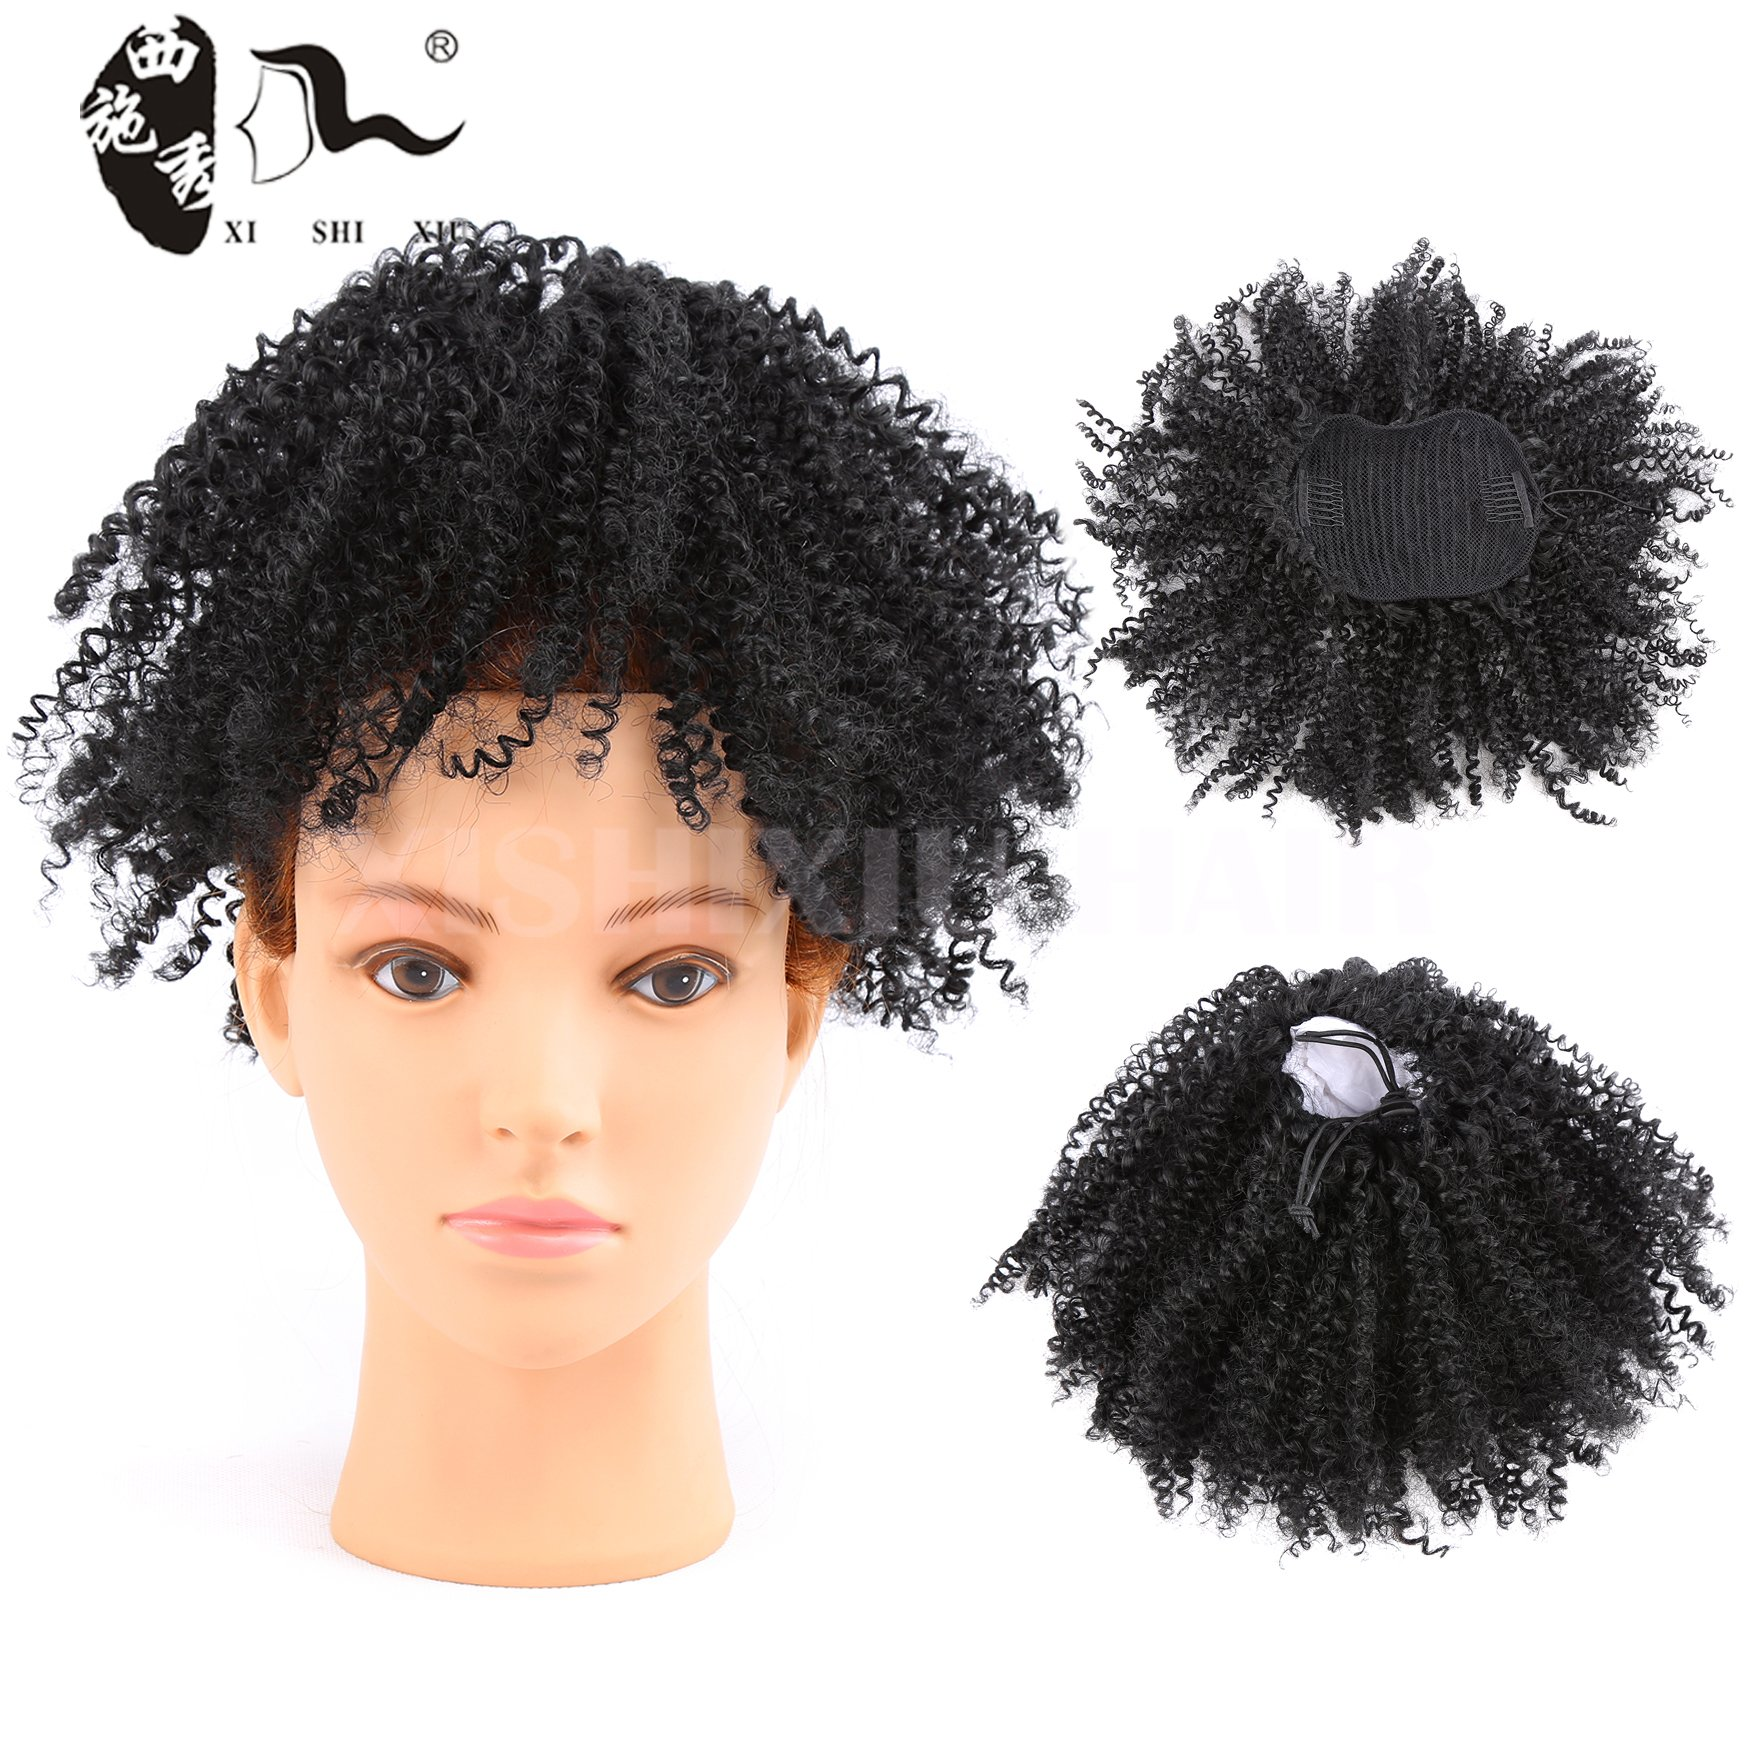 Afro Kinky Curly Clip-in Top Closure Ponytail Hair Piece Afro Puff Synthetic Hair Ponytail Extensions Kinky Curly Drawstring Synthetic Hair Ponytail Hairpieces Natural Curly Clip In Ponytail (Black)